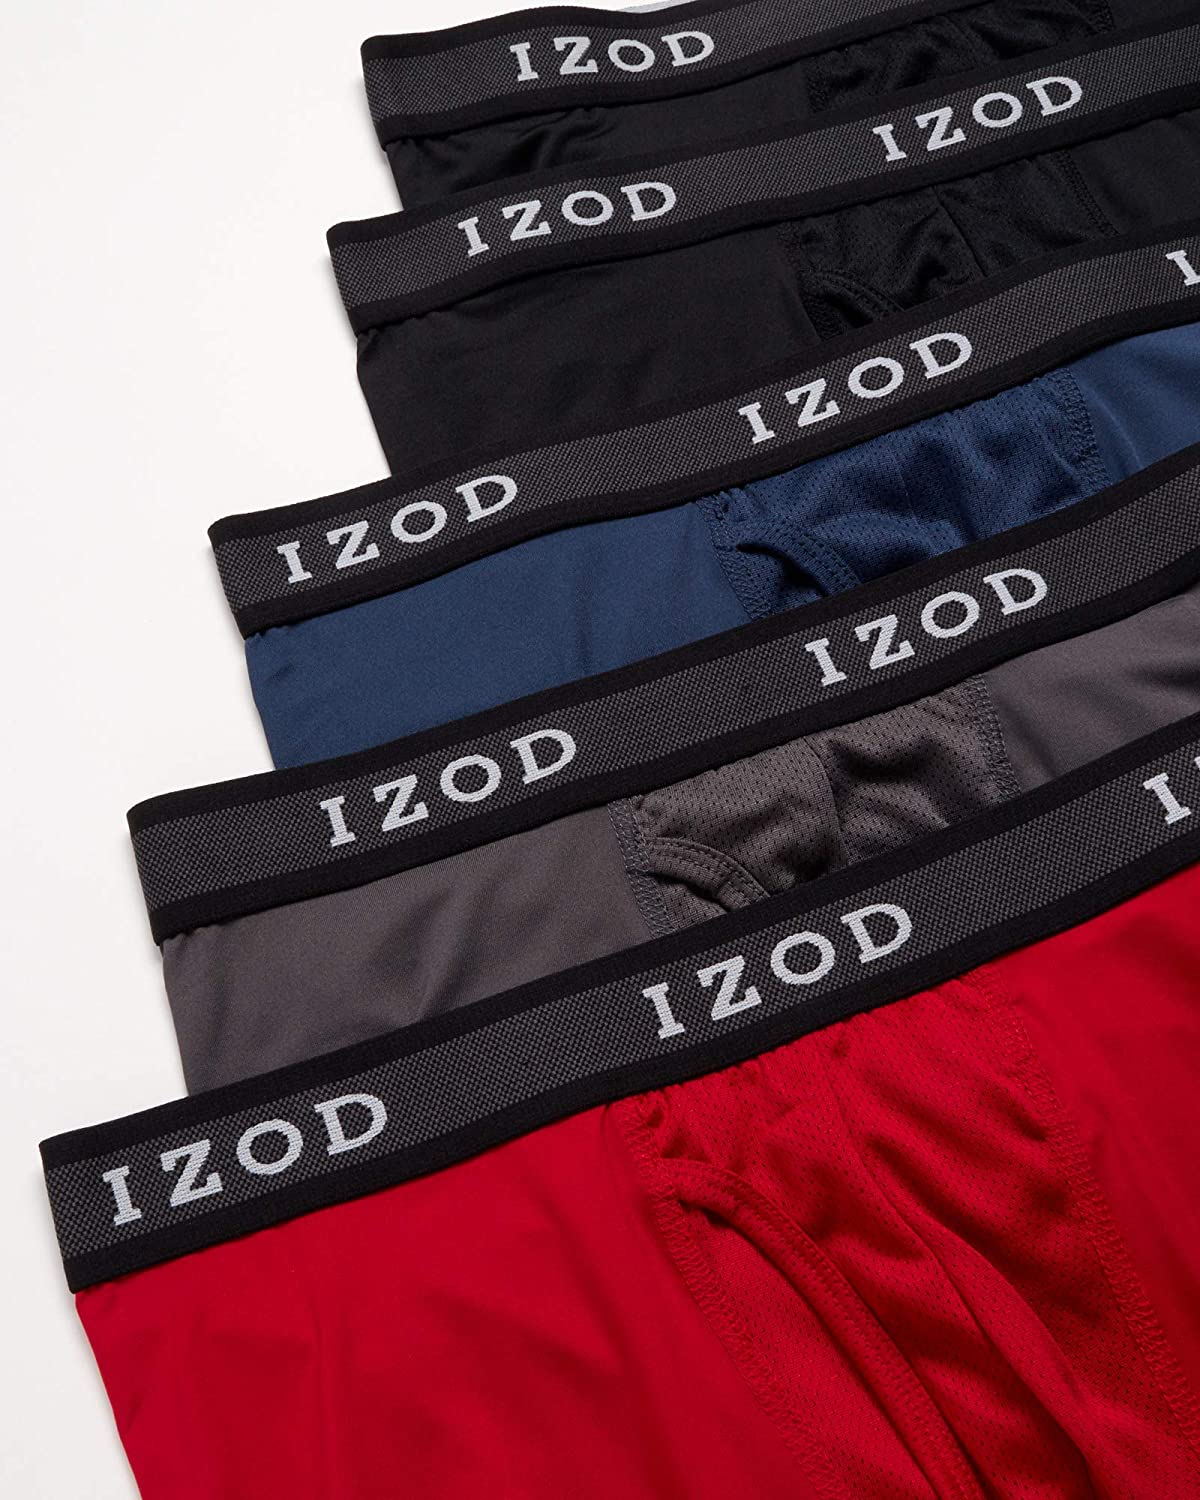 IZOD Men's Underwear - Performance Boxer Briefs with Mesh Functional Fly (10 Pack)